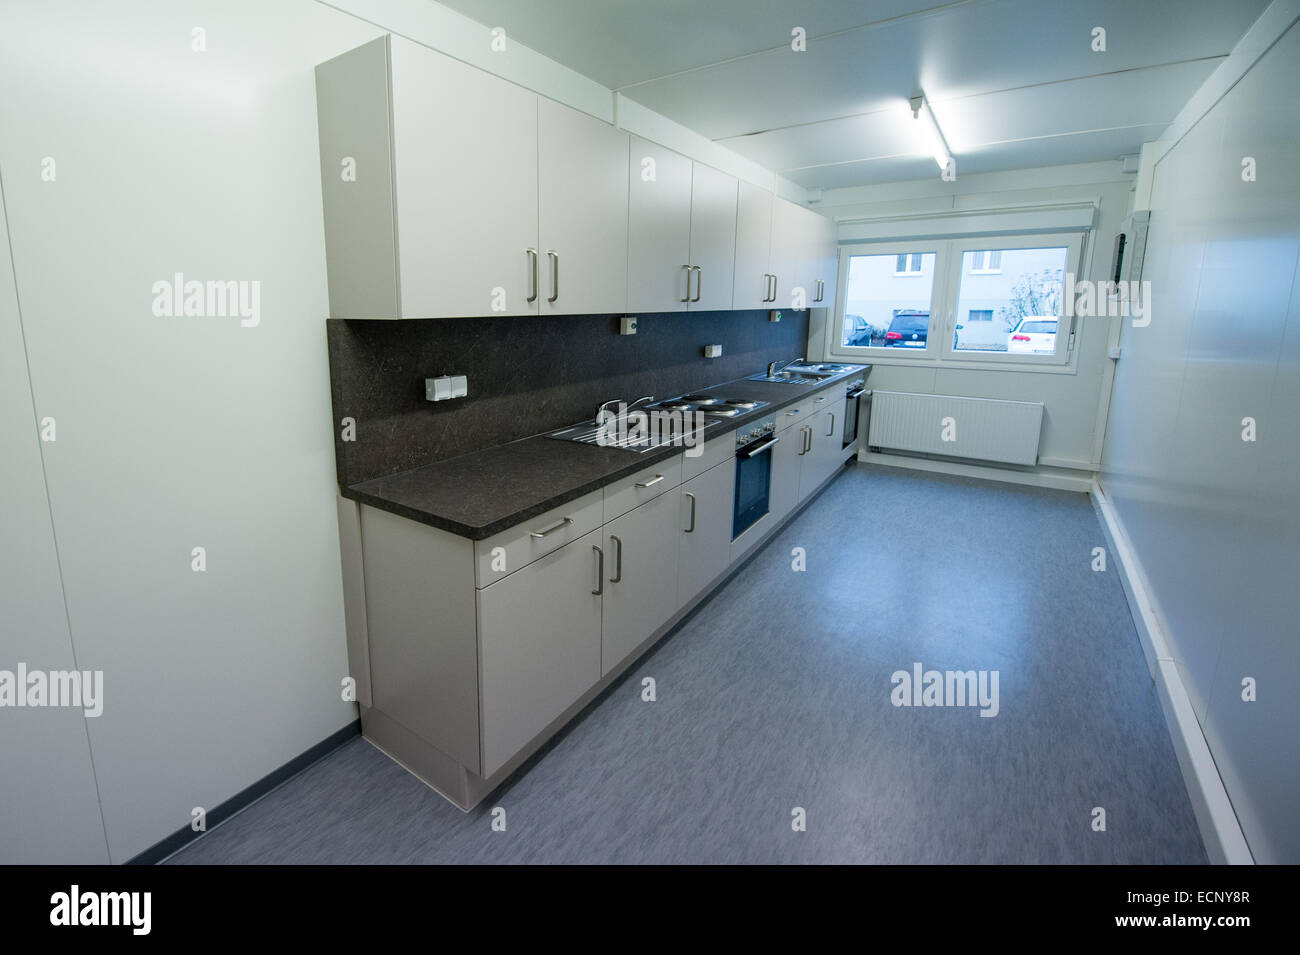 Barracks Kitchen Stock Photos & Barracks Kitchen Stock Images - Alamy